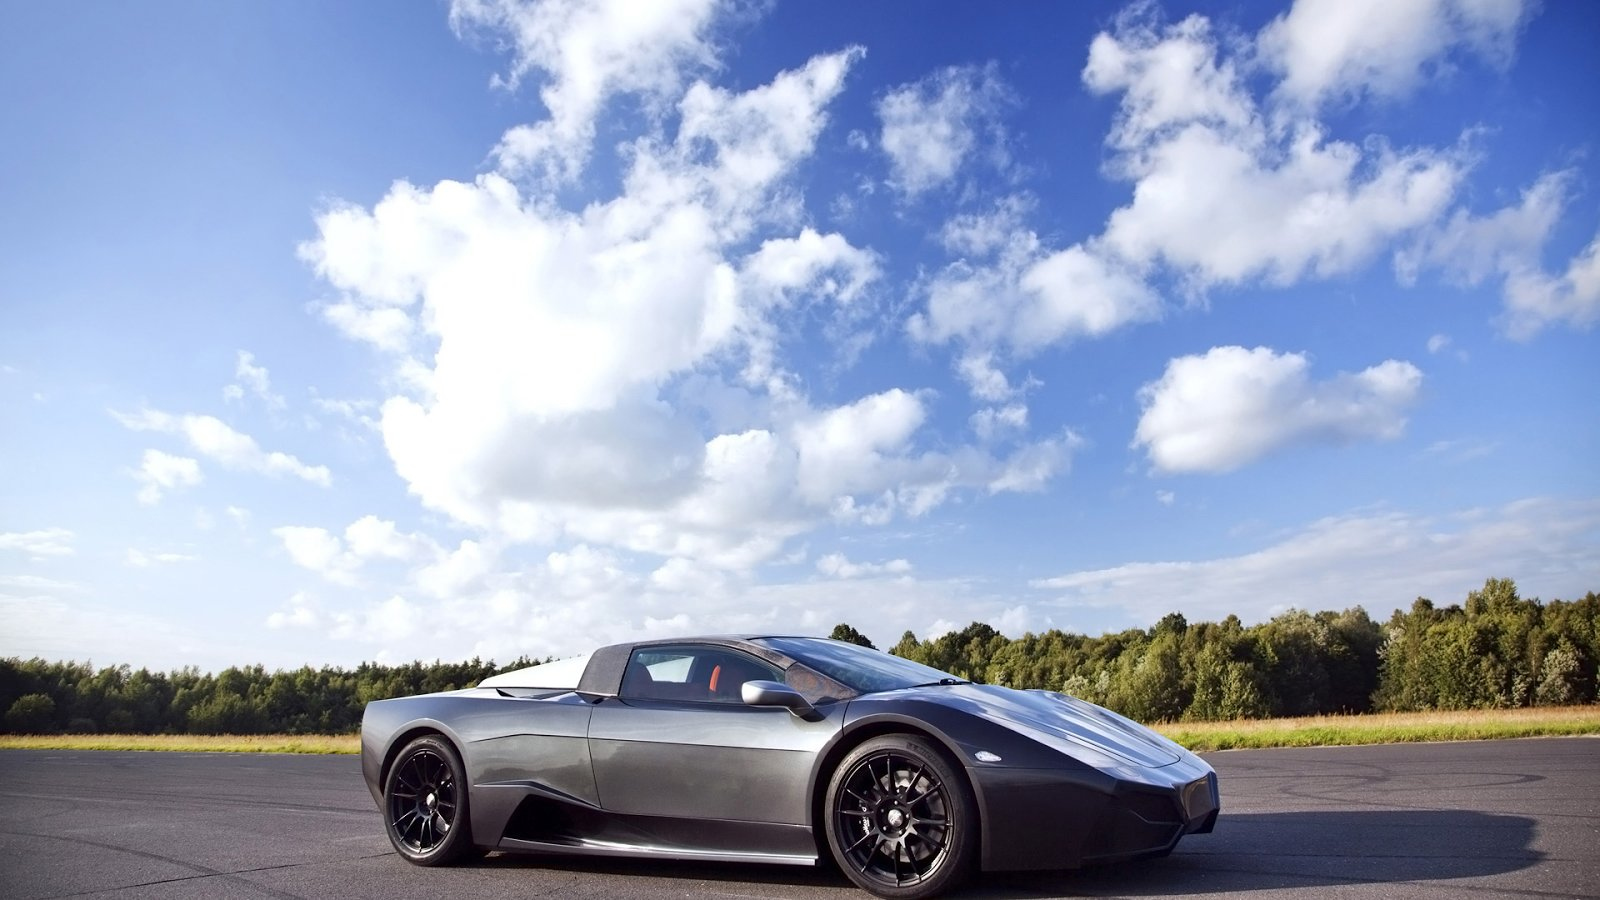 New Bestcar 2012 Arrinera On This Month